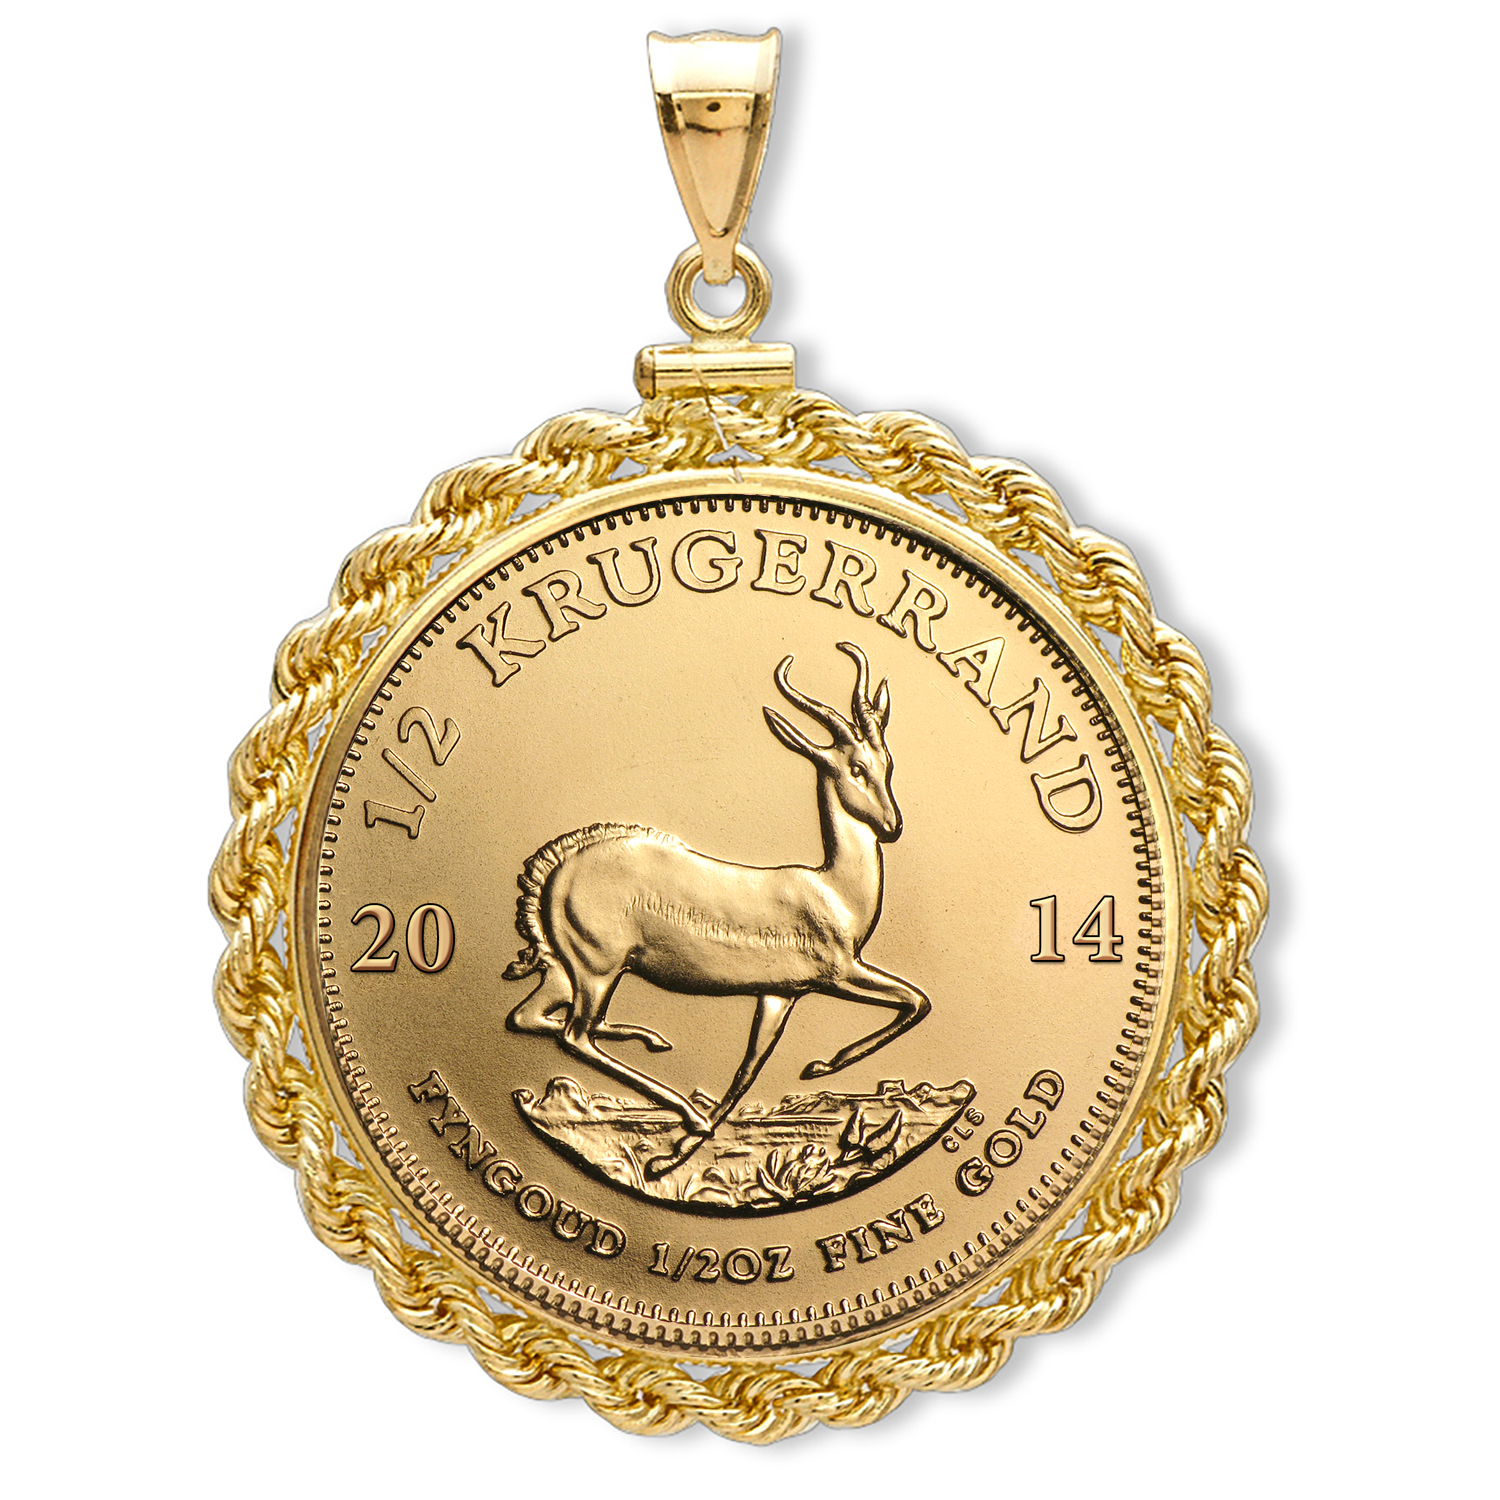 2014 1/2 oz Gold Krugerrand Pendant (Rope-ScrewTop Bezel)